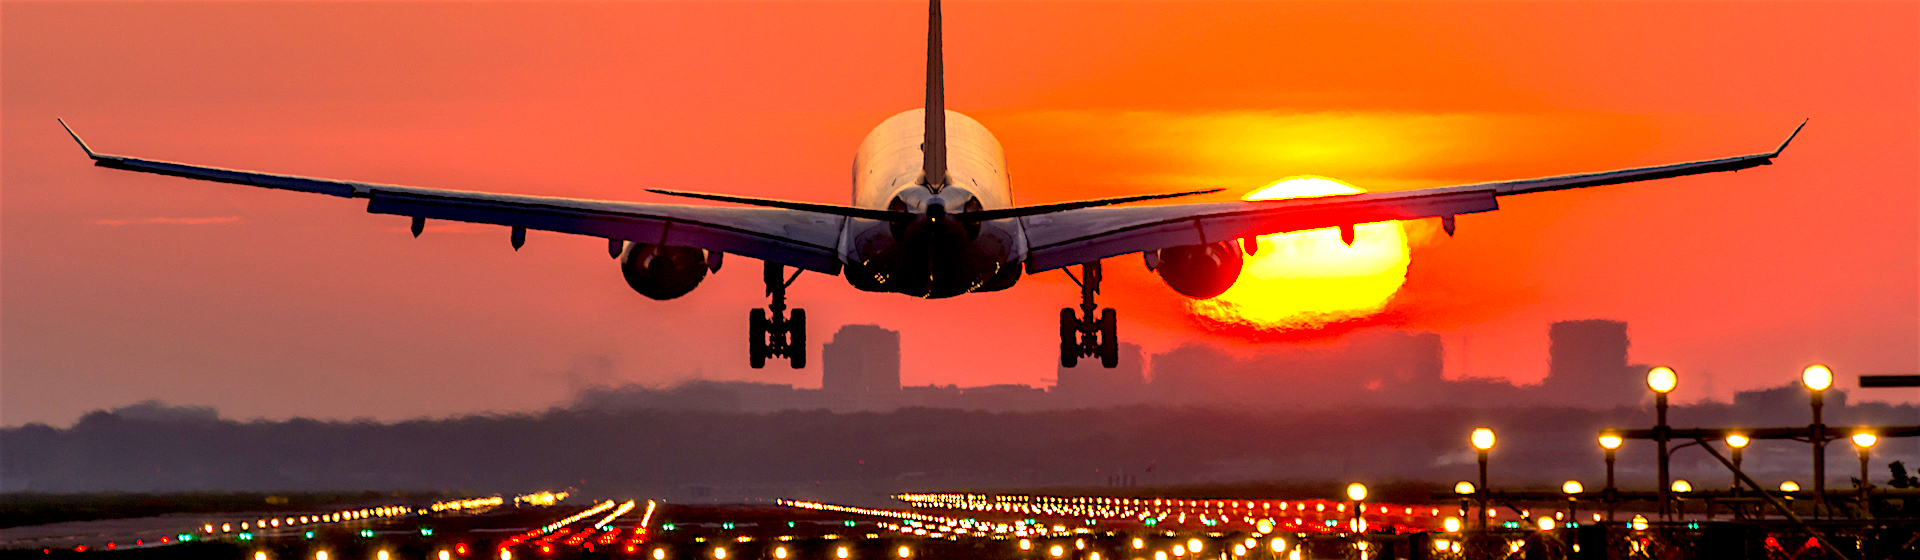 1920x560, plane, sunset, sunrise, night, flight, flying, take off, landing,